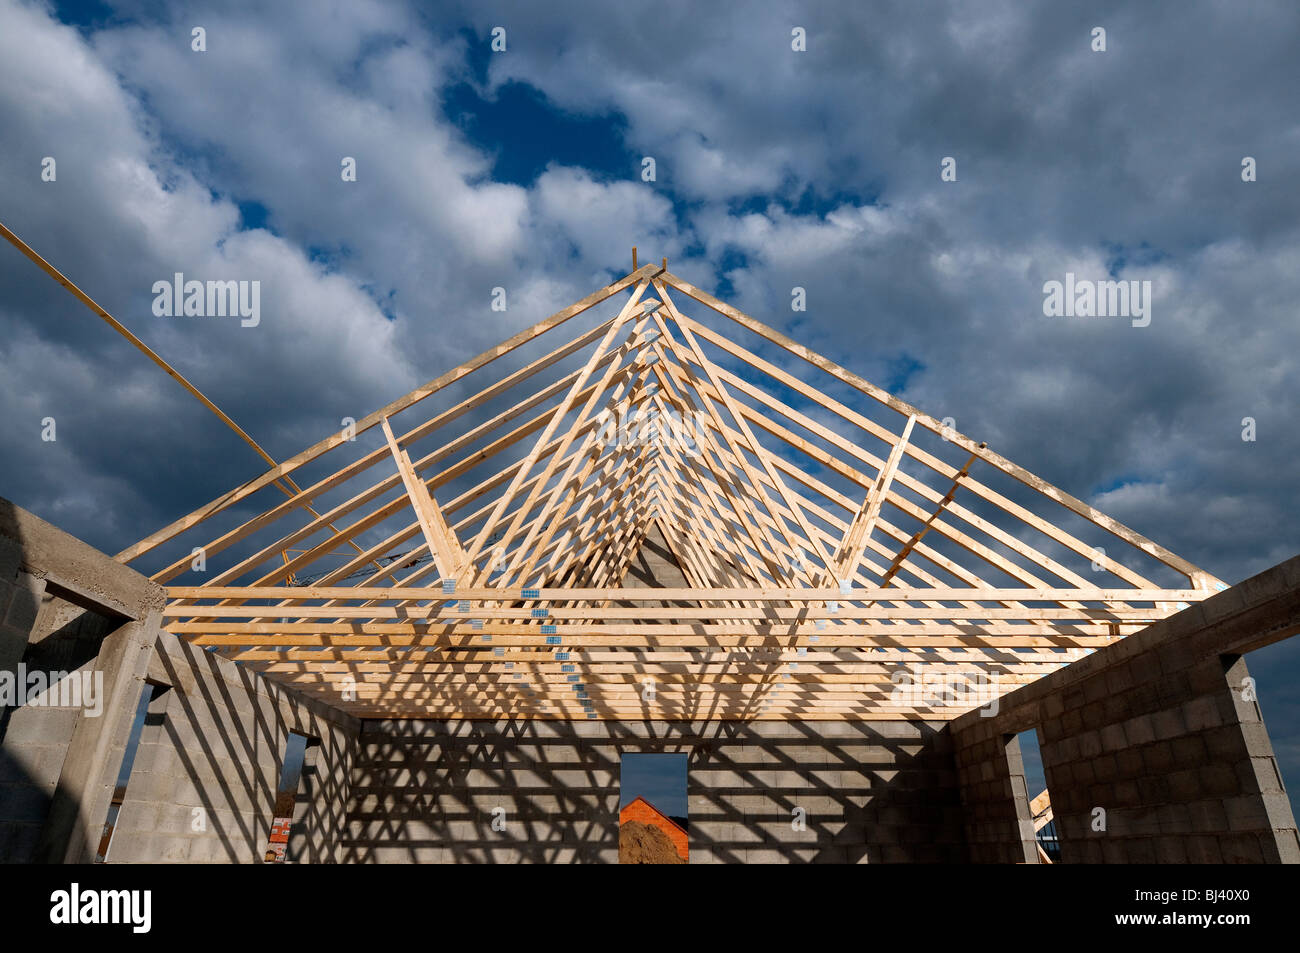 Prefabricated Roof Trusses Stock Photos Amp Prefabricated Roof Trusses Stock Images Alamy